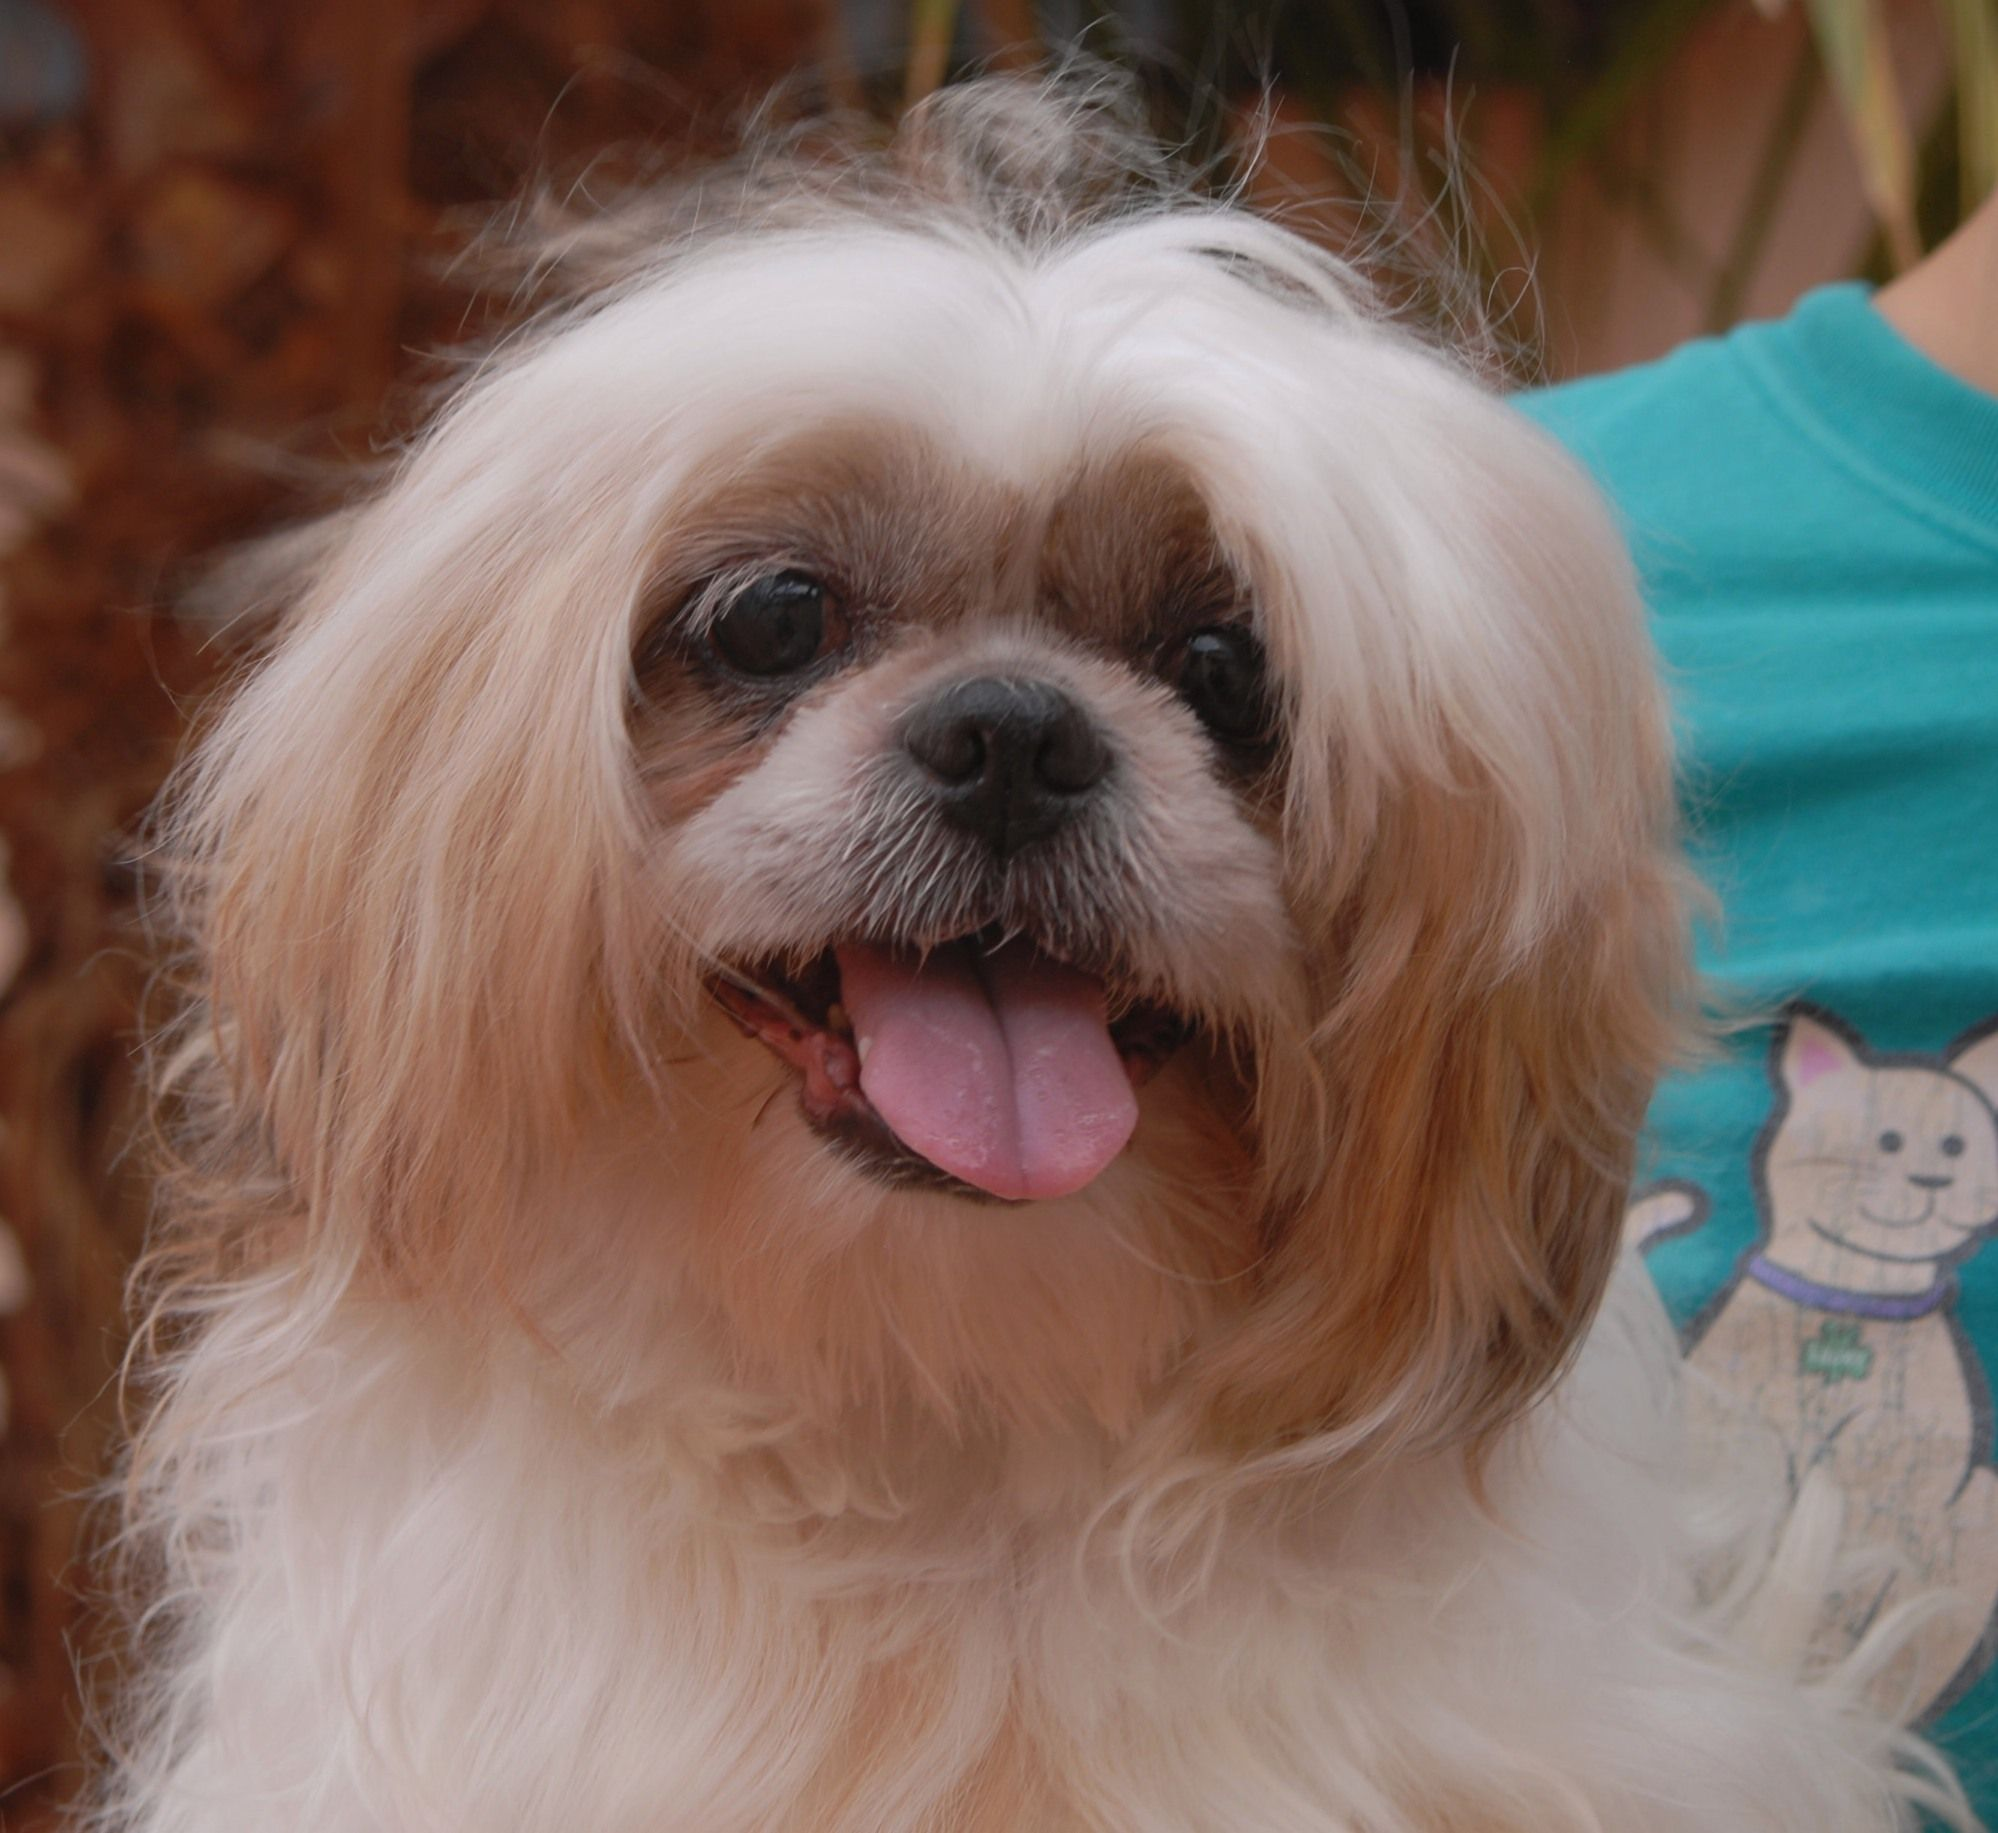 Pappy, a calmnatured ShihTzu, asks for a forever home